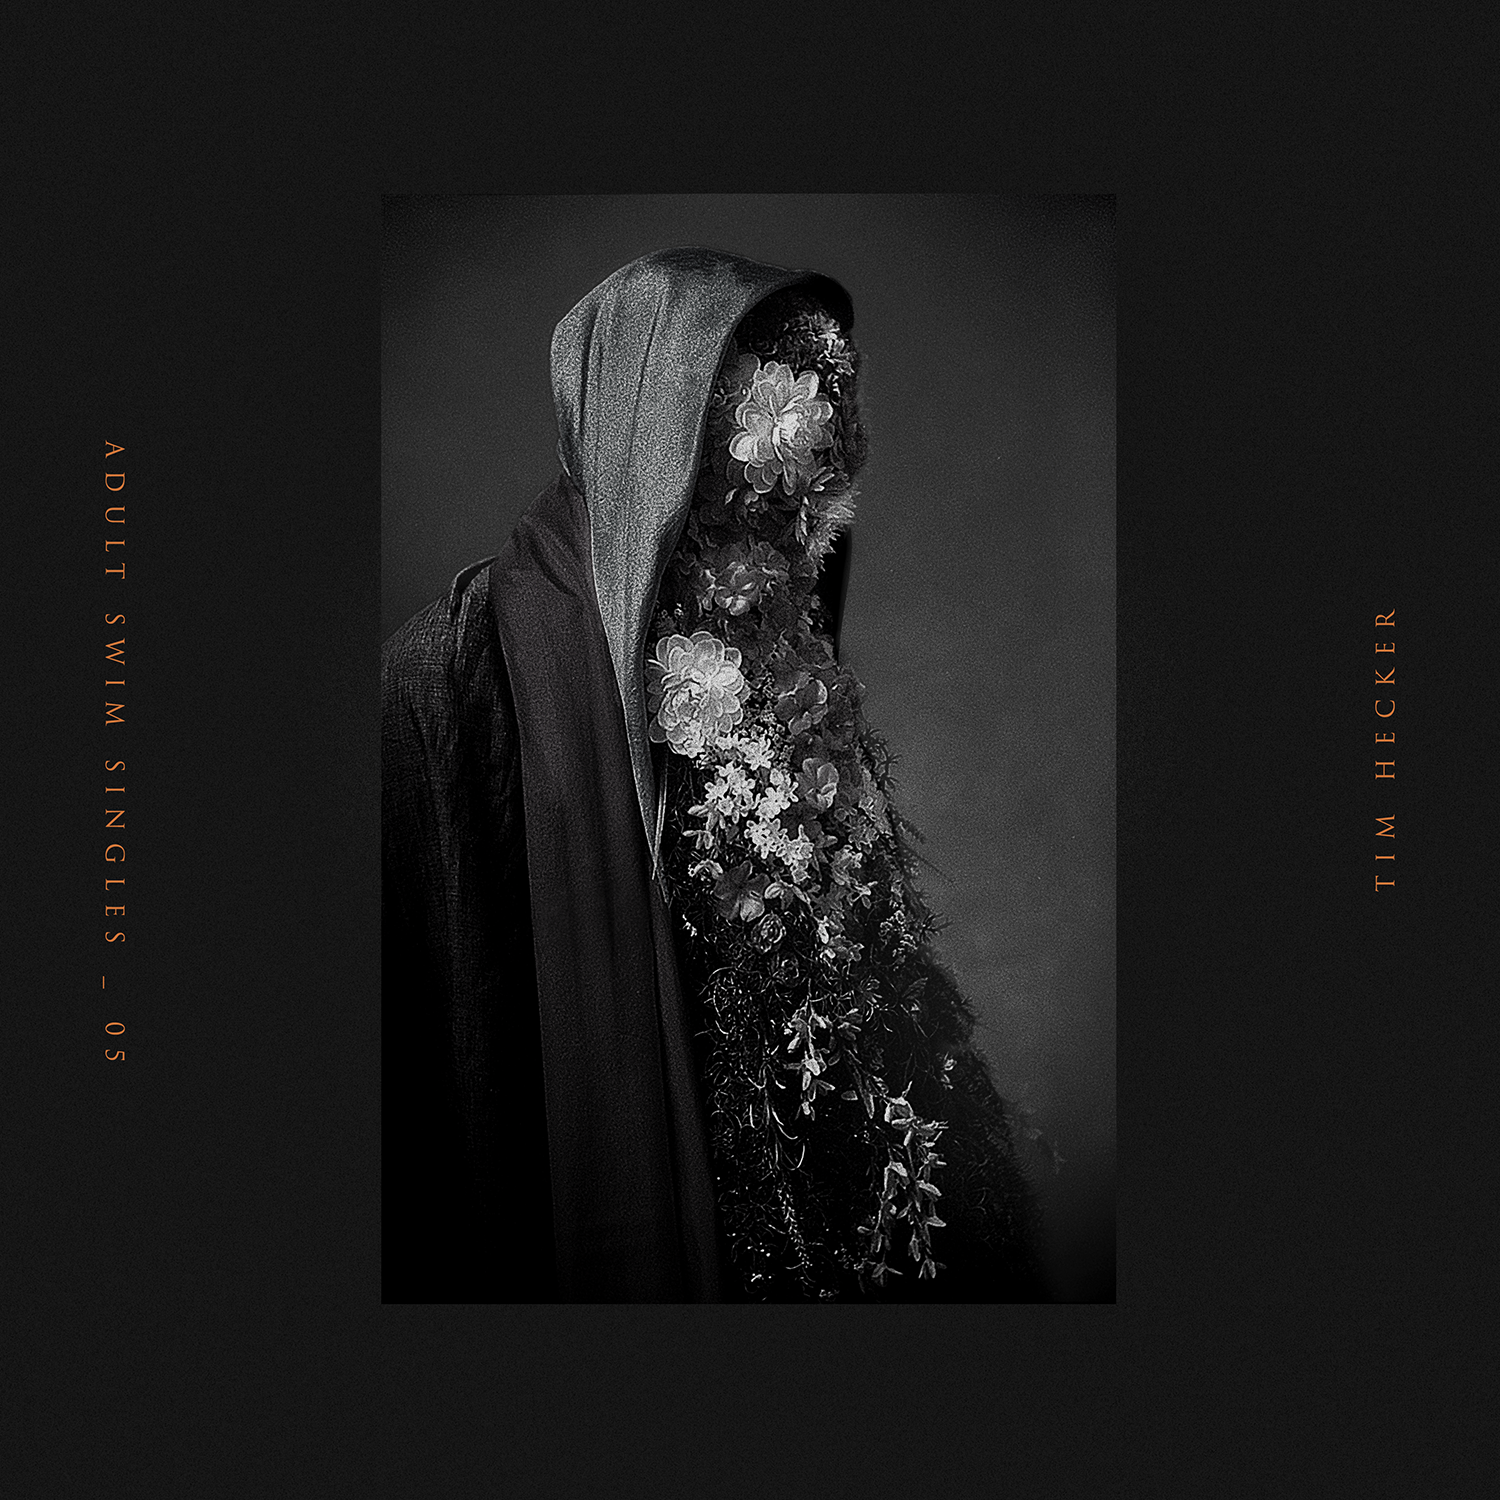 Art direction, photography and design for Tim Hecker's  Amp's, Drugs, Mellotron  single. I constructed a costume featuring a mask of handsewn silk flowers. Photography support from Brian Smith.